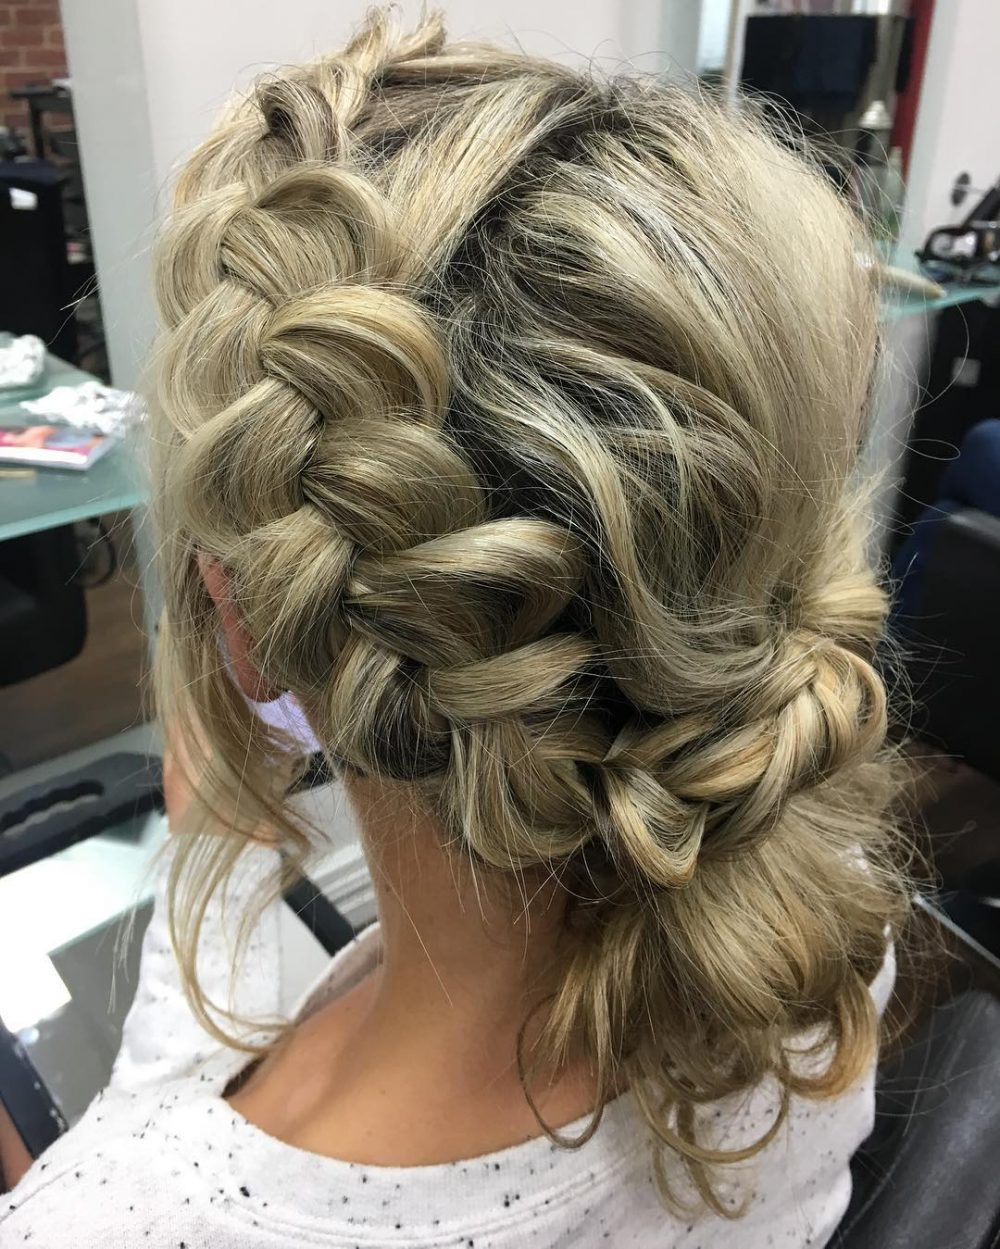 44 Top Bohemian Hairstyles Amp Hair Ideas For 2018